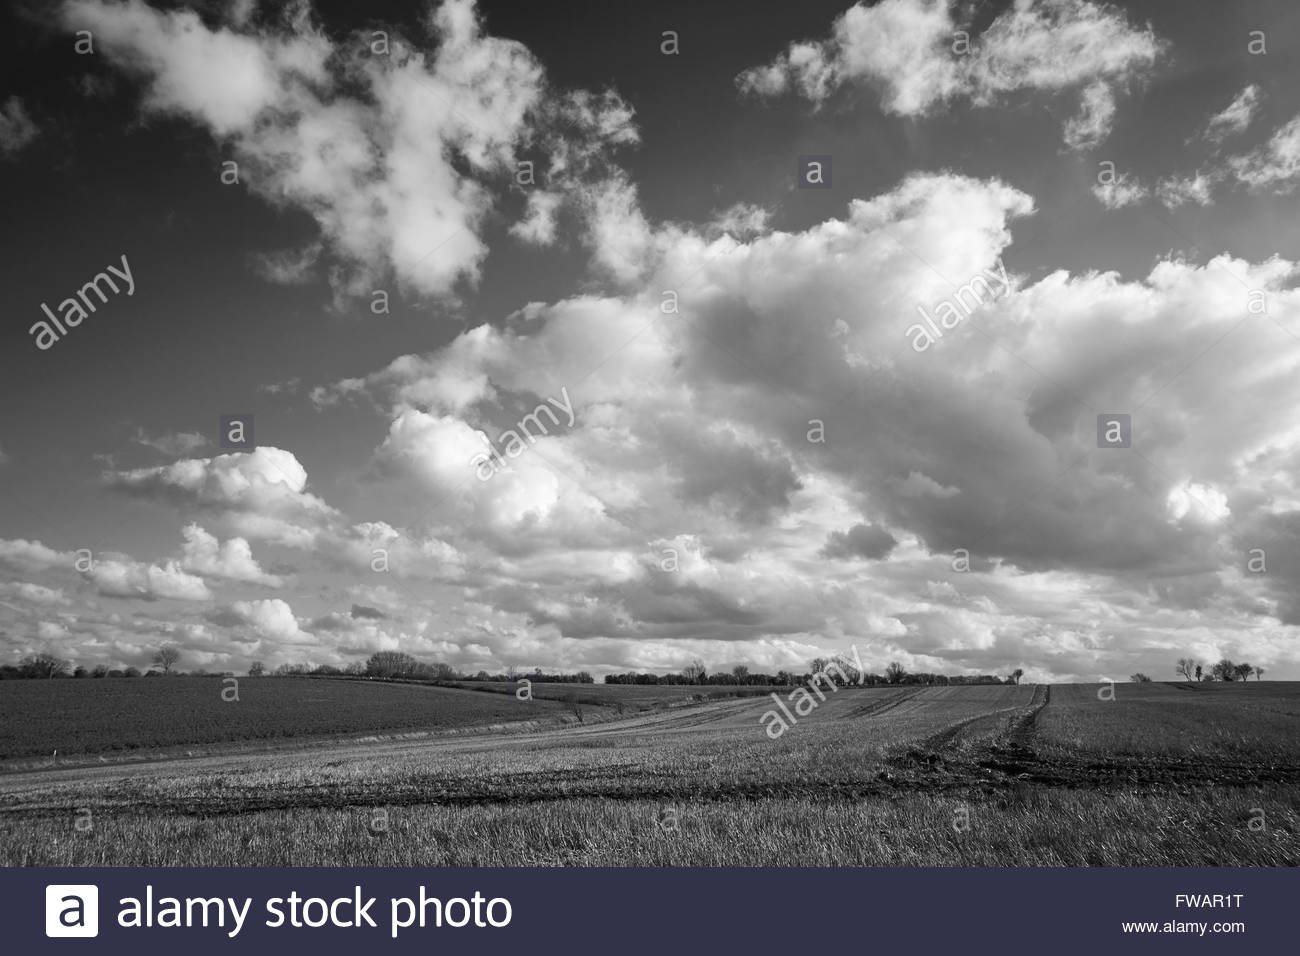 Cumulonimbus clouds forming against a bright sky over agricultural land. Bedfordshire, UK. - Stock Image